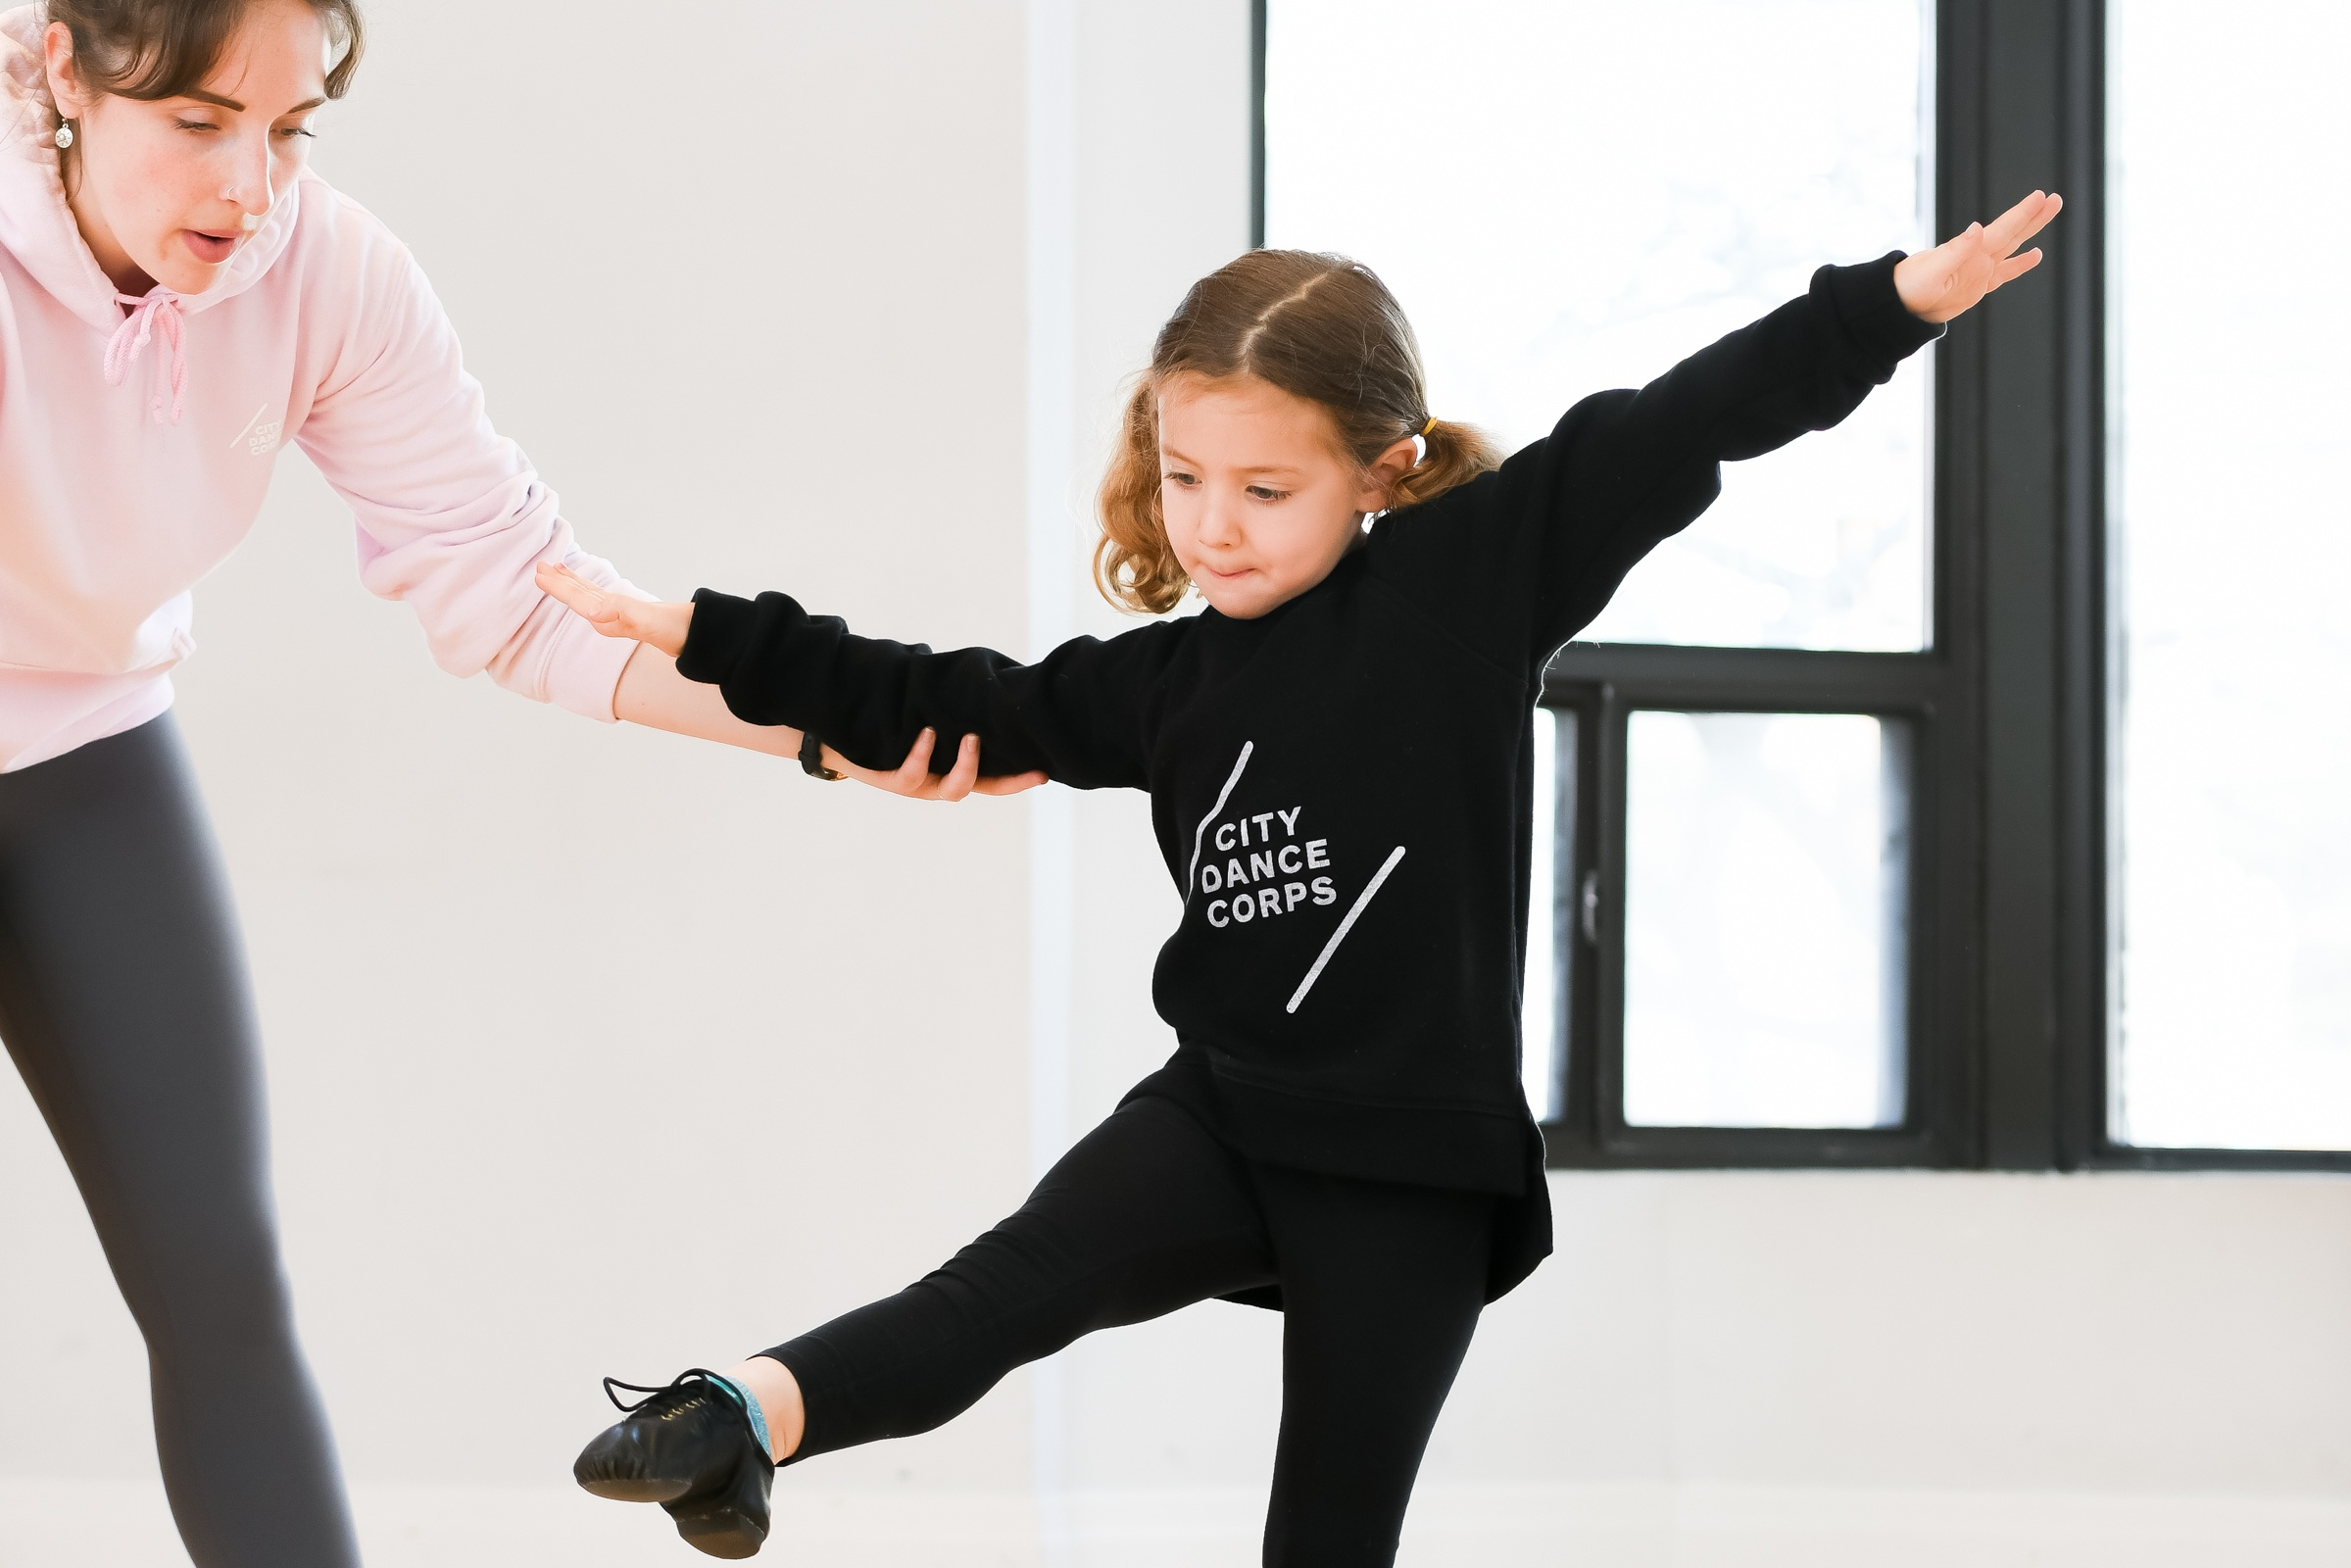 JAZZ - Jazz dance is a variety of techniques influenced by many dance forms and is one of the most popular and essential styles. This class focuses on progression, coordination, isolation, technique, and performance. It is high in energy and a lot of fun!